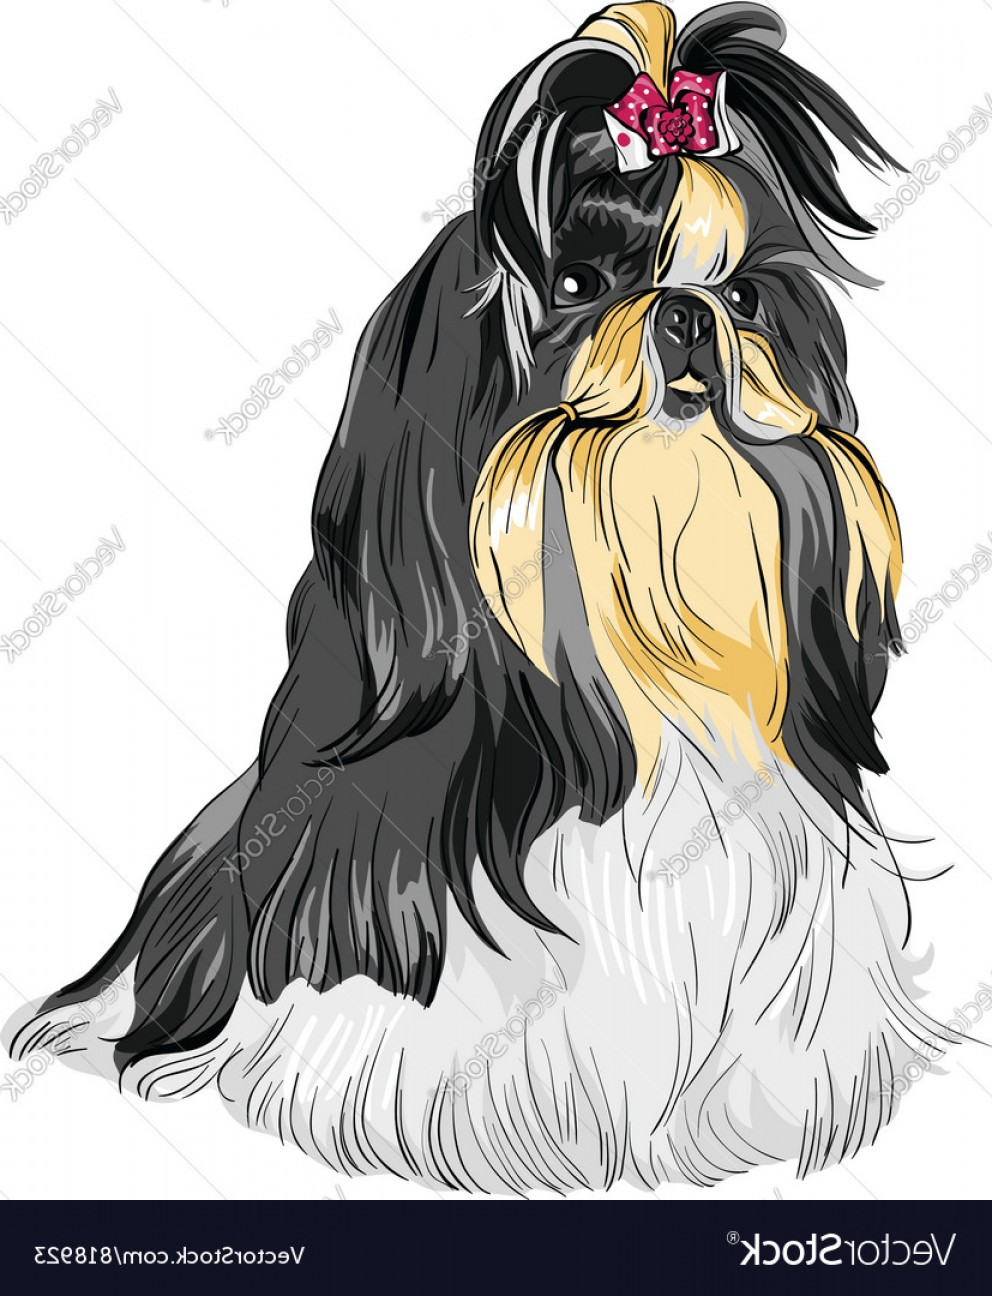 Shih Tzu Vector Siluete: Sketch Dog Shih Tzu Breed Vector